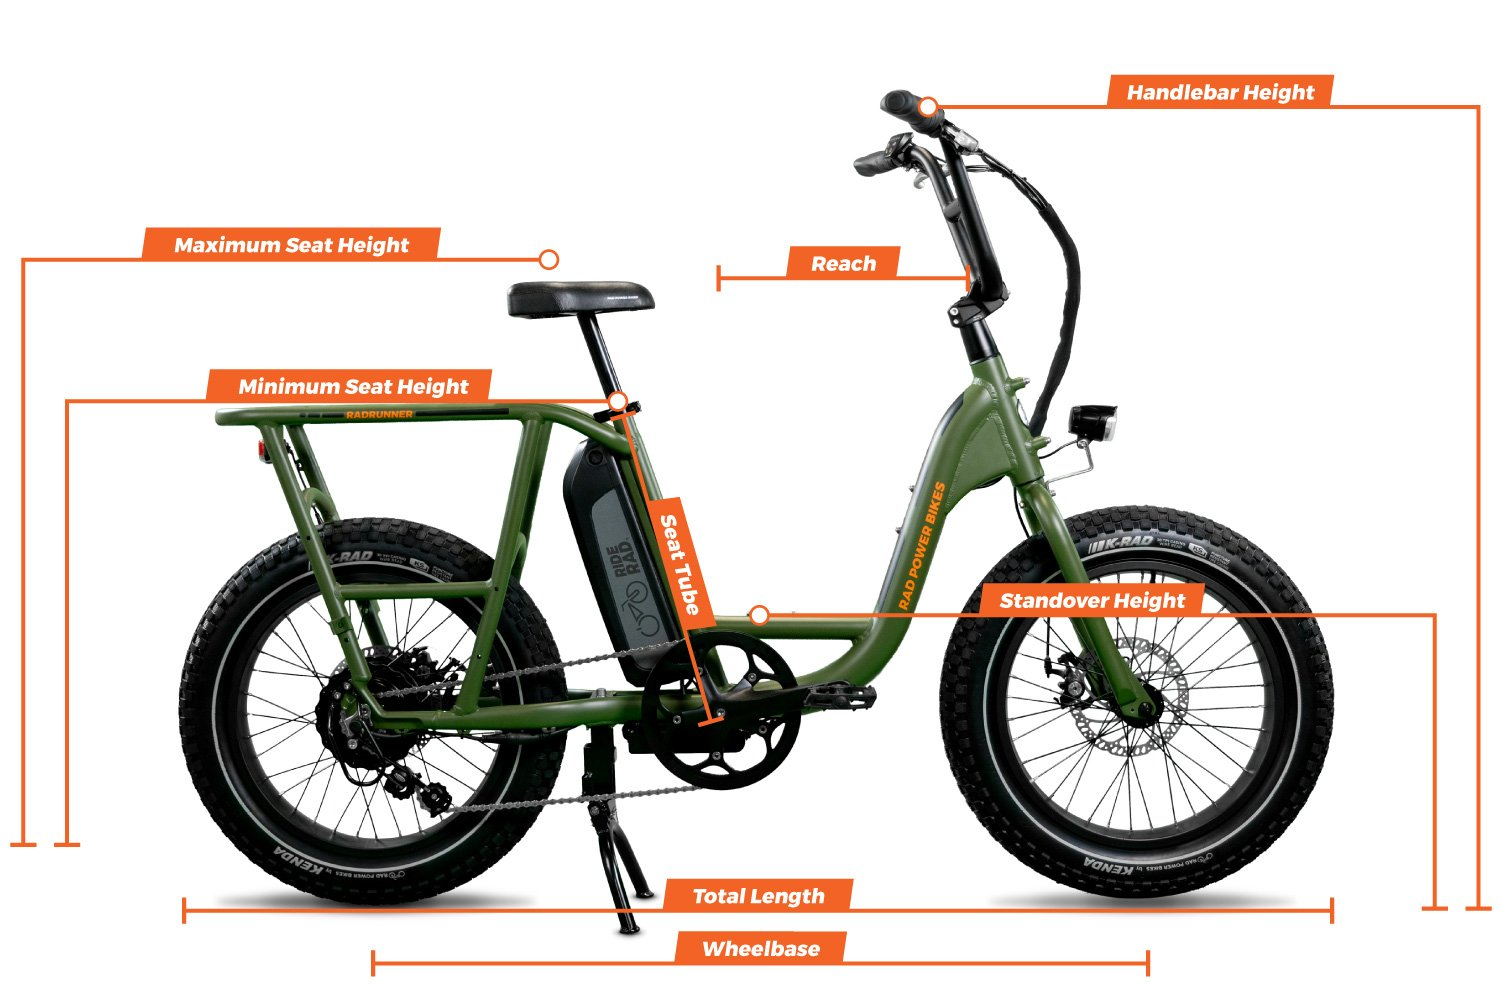 Geometry chart for the RadRunner Electric Utility Bike